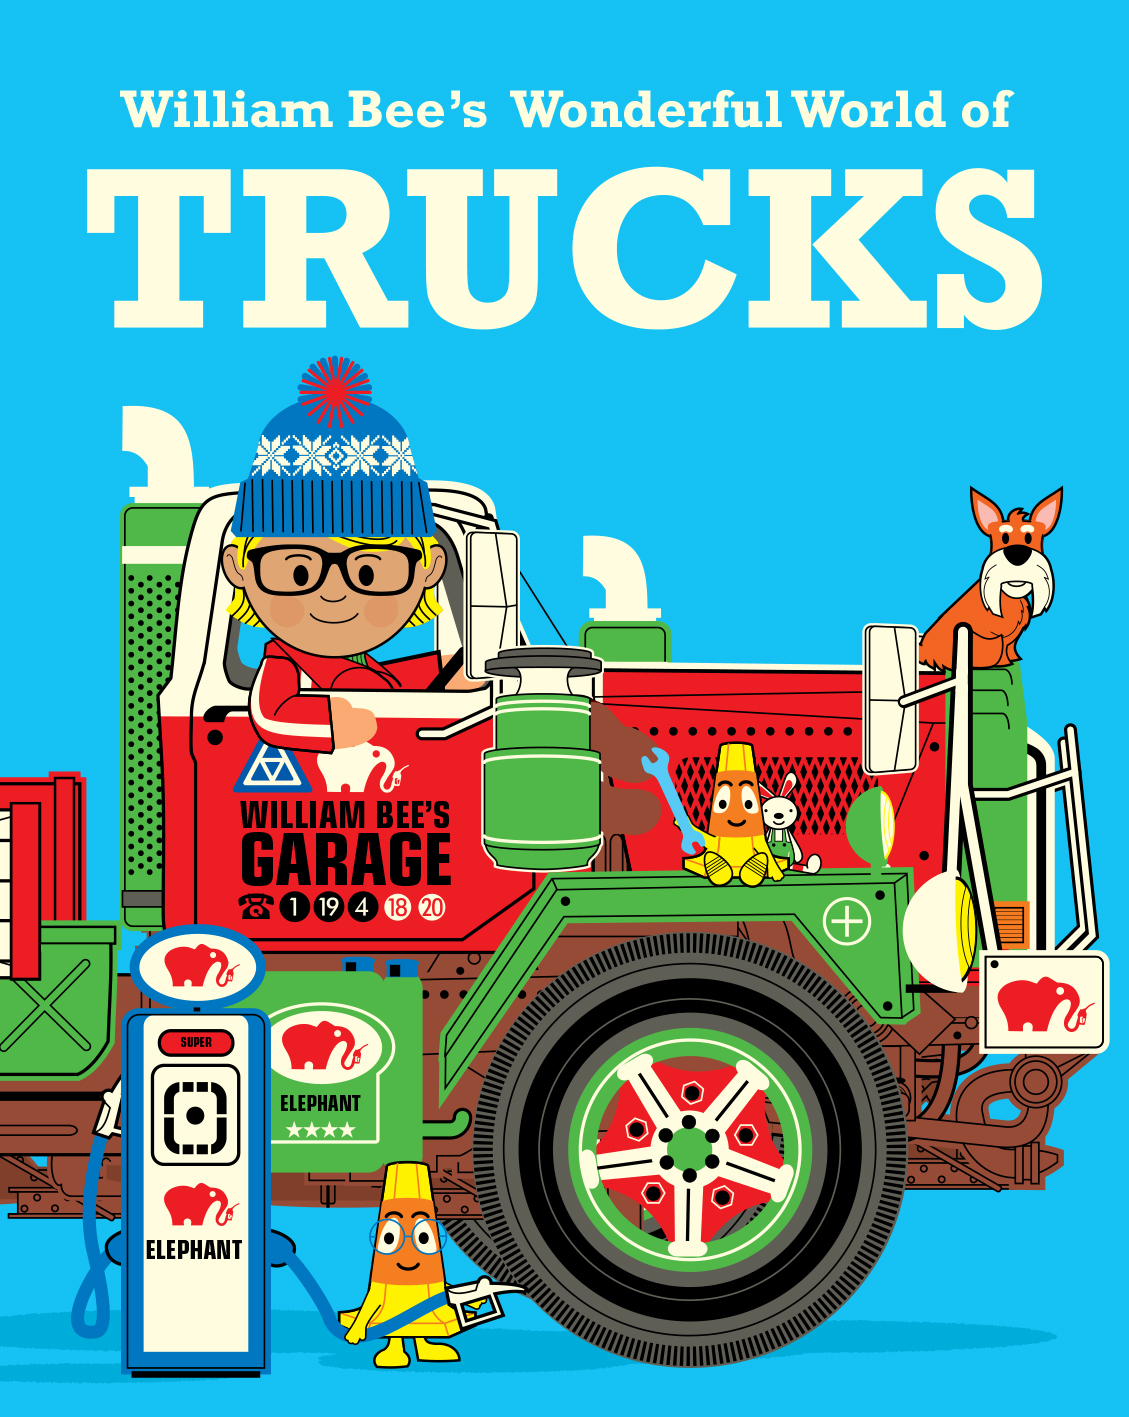 William Bee's Wonderful World of Trucks